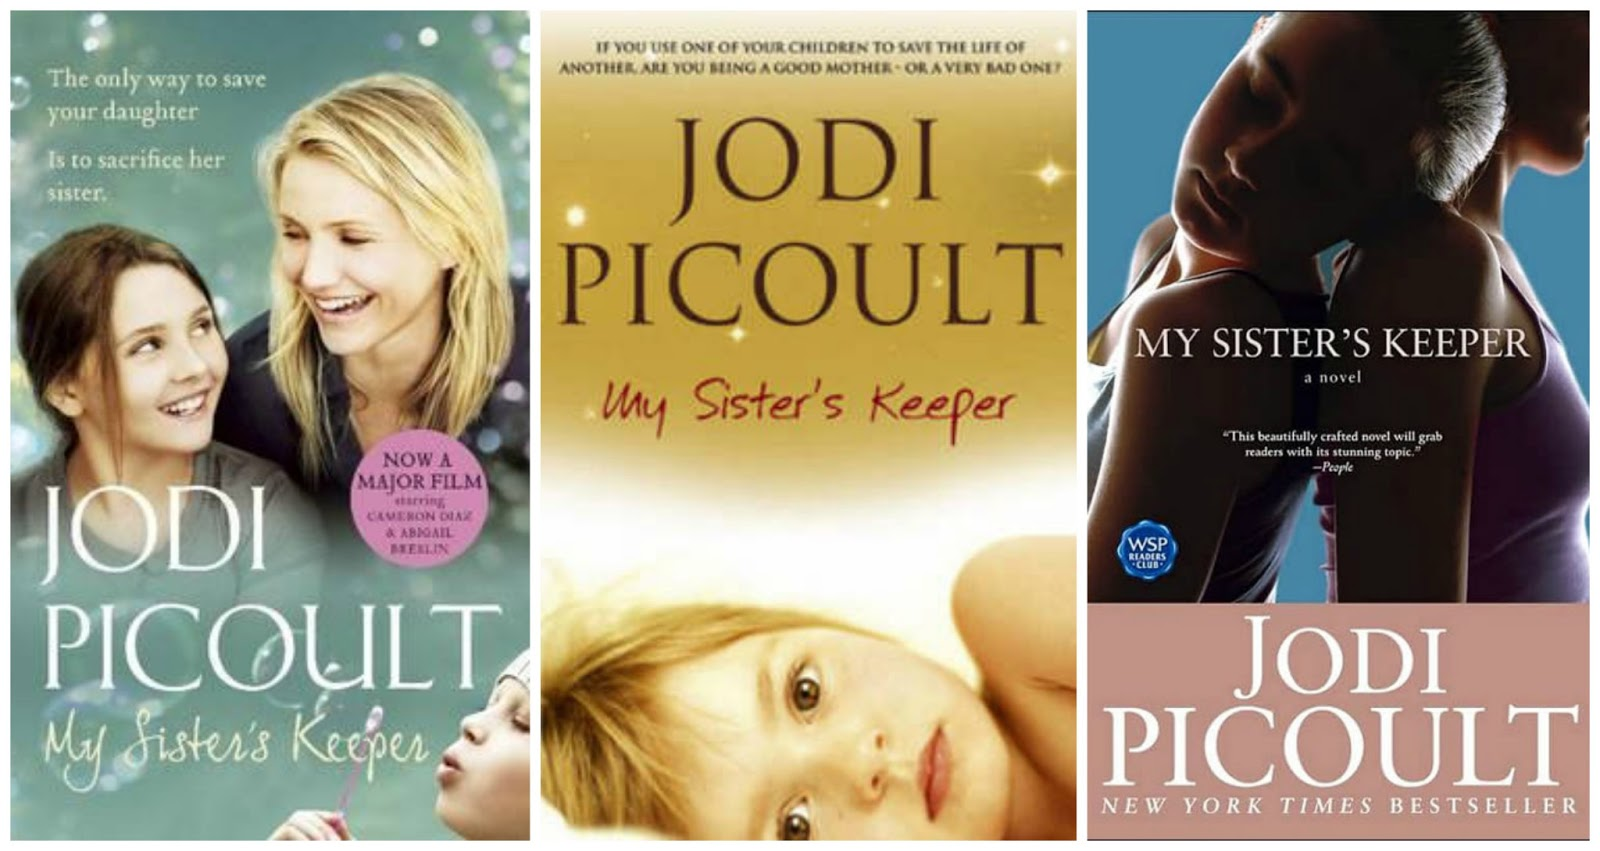 choosing sides in my sisters keeper a novel by jodi picoult Jodi picoult did such a mistake in her book for instance, the main character anna is created as a teenage girl who was conceived as a spare-part manufacturer for her older sister she feels that her parents dont see her as a child but as her sisters keeper.